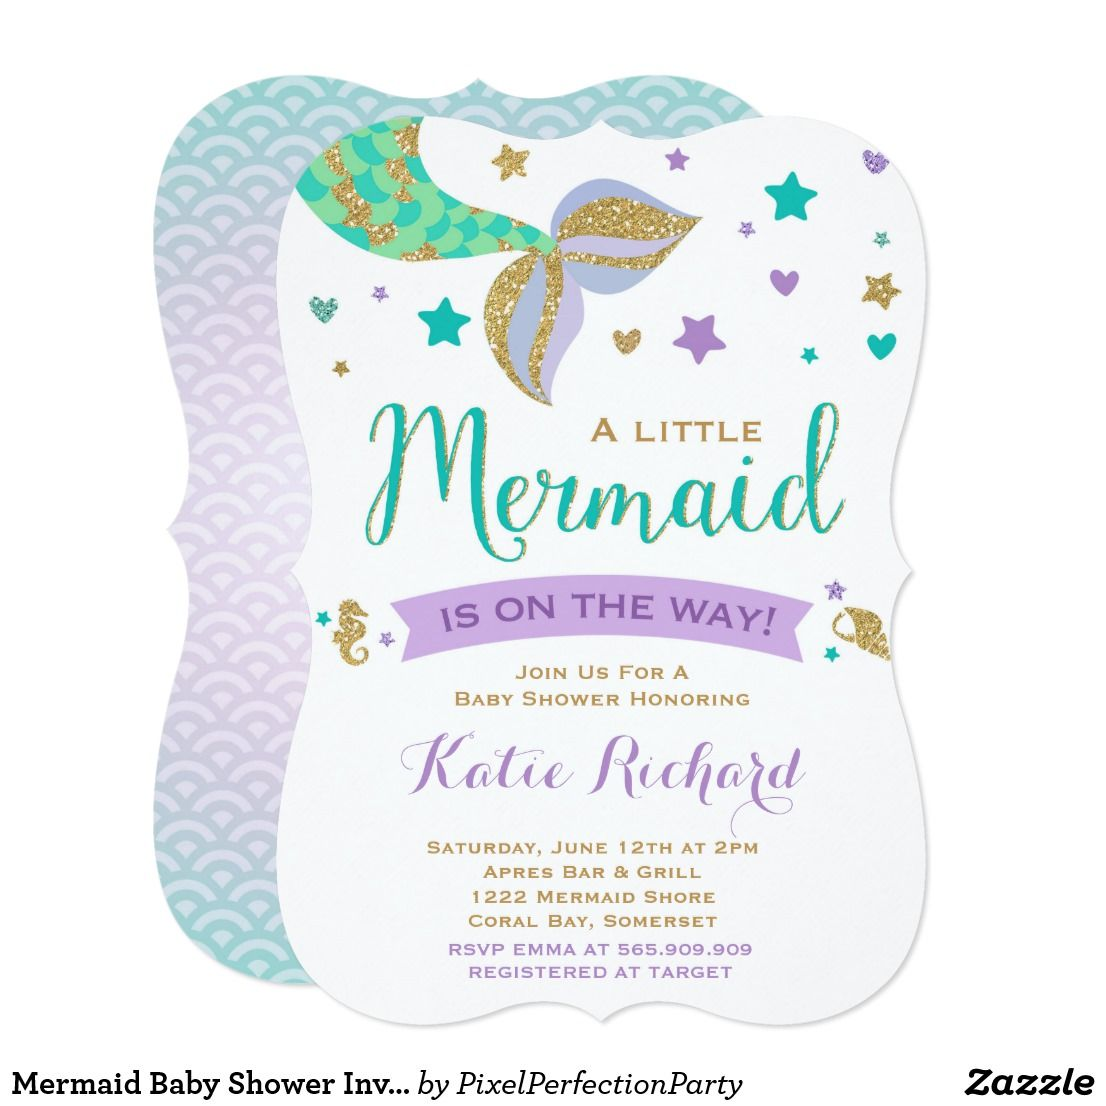 Mermaid Baby Shower Invitation Teal Purple Gold | Mermaid baby ...